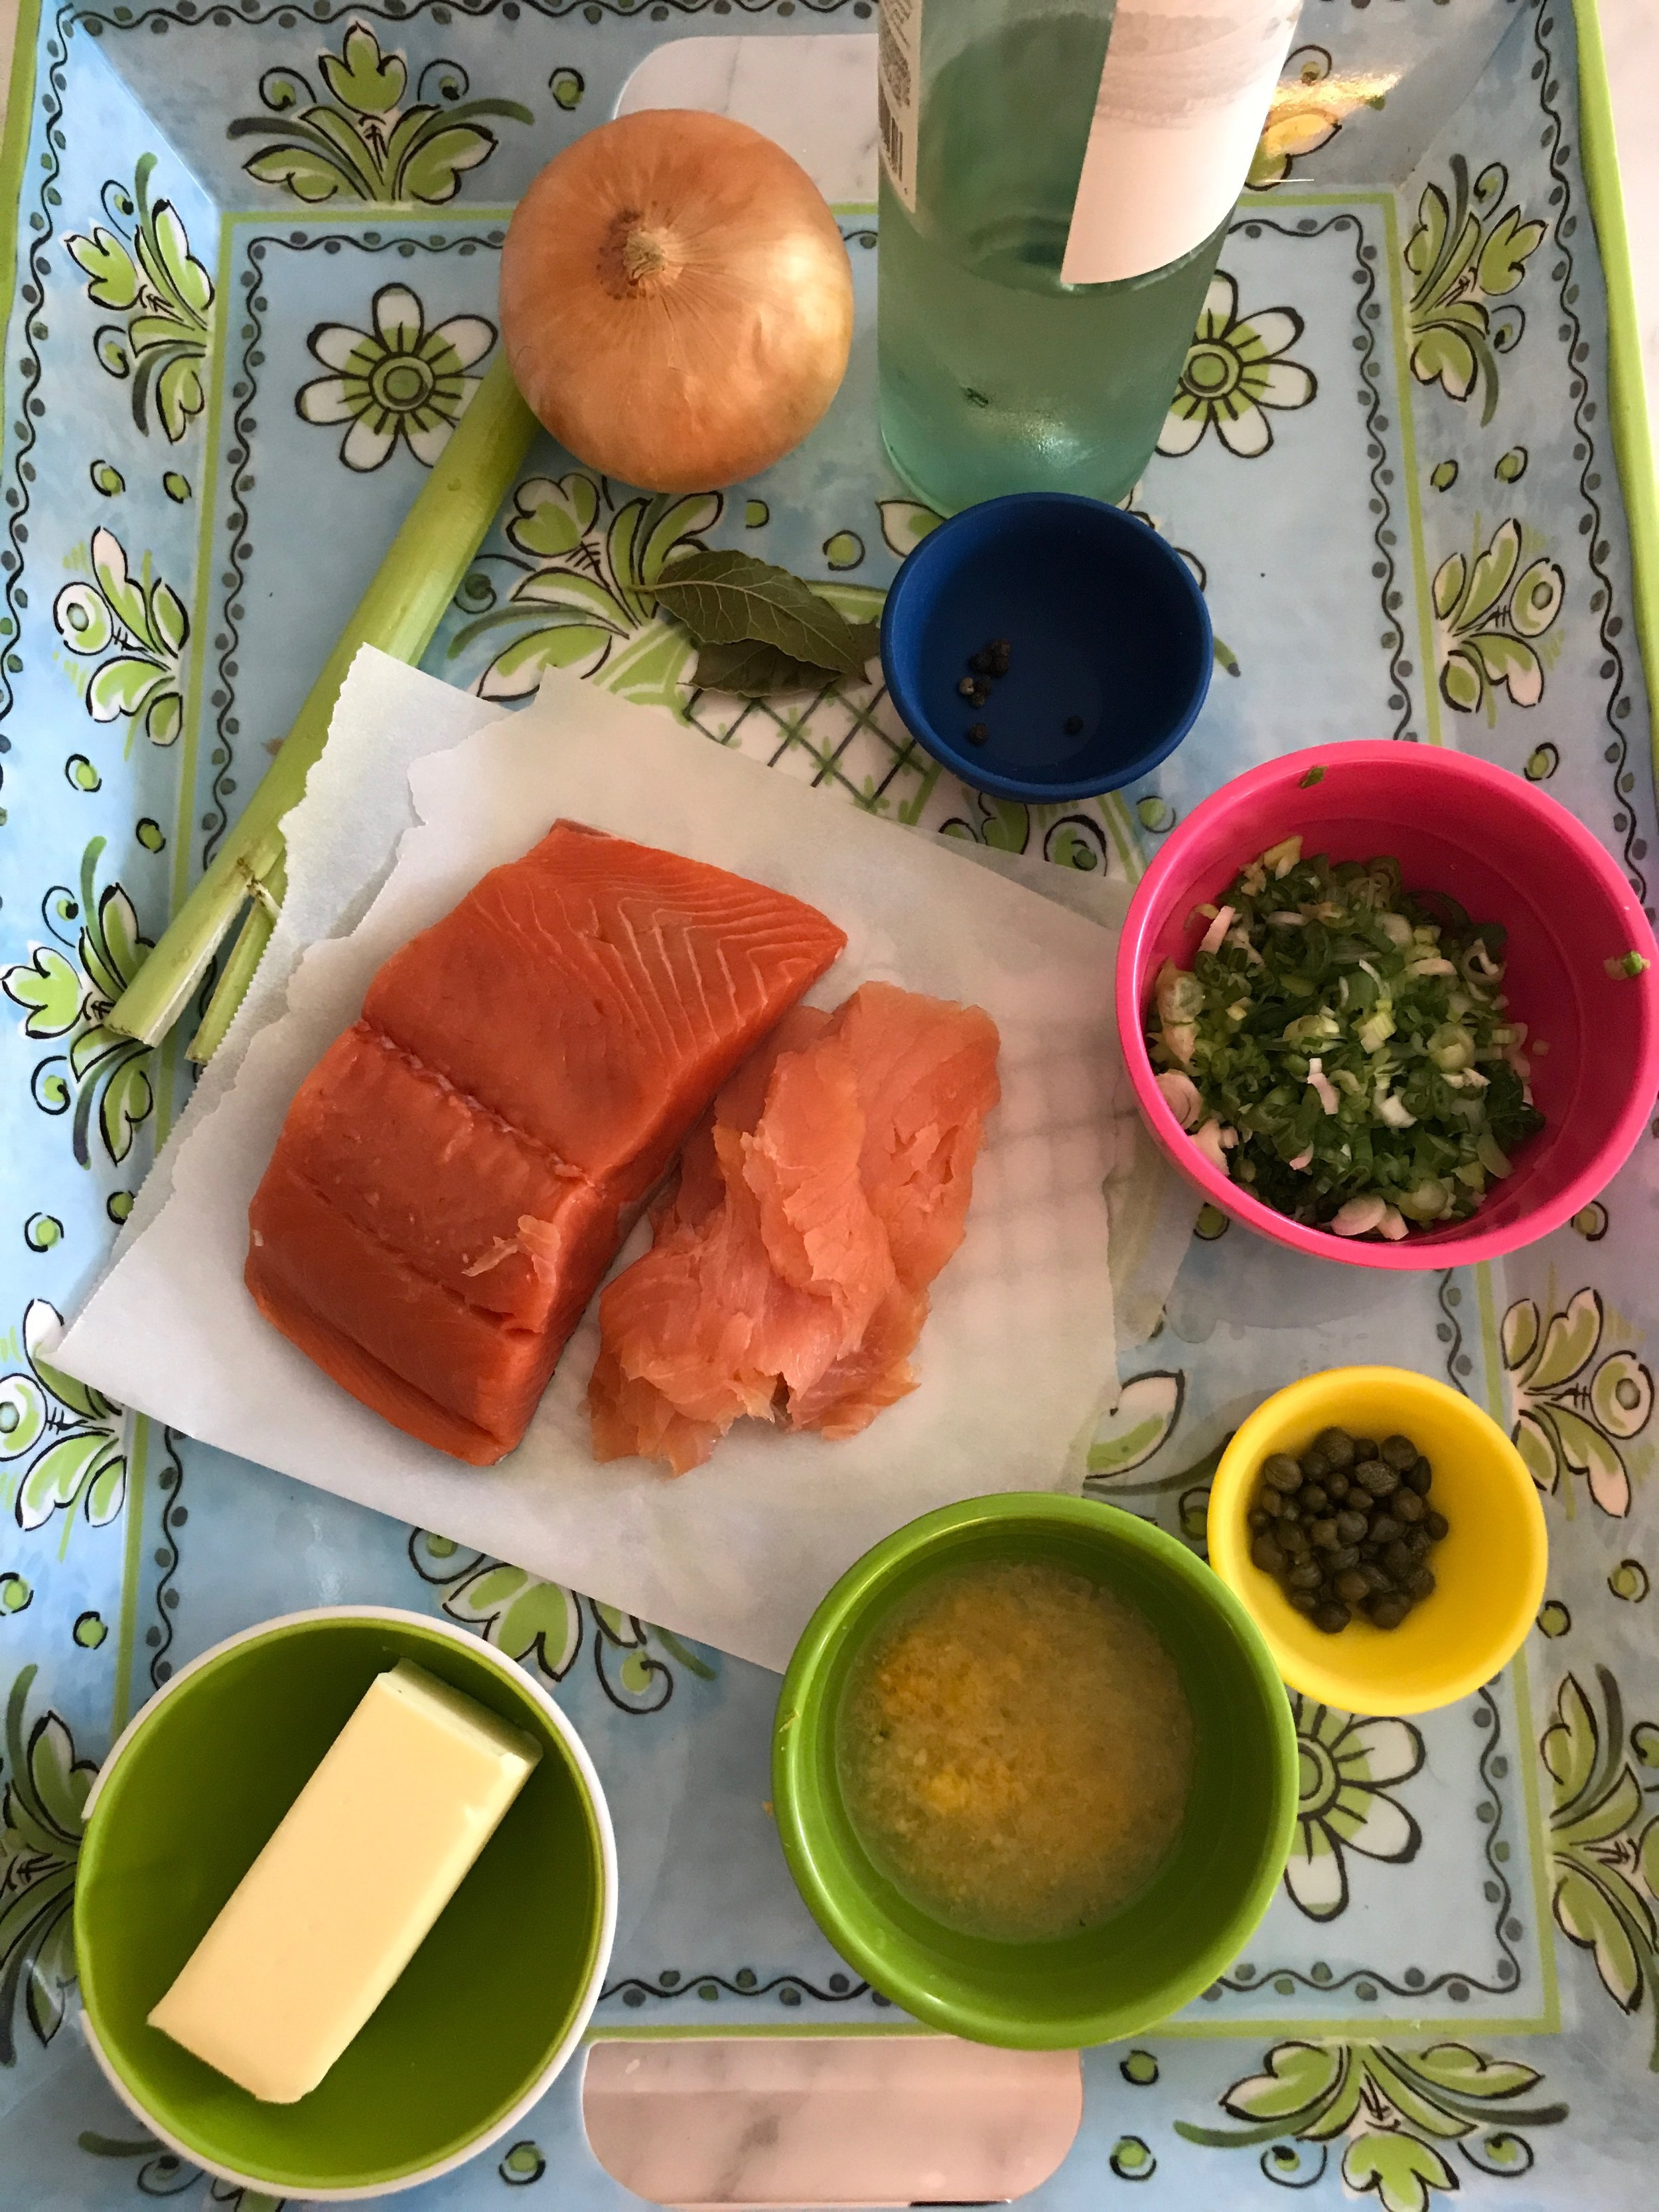 Ingredients - 4 cups water1 cup white wine 1 medium onion cut into ¼ inch pieces1 stalk celery2 bay leaves4 peppercorns½ pound salmon, 1inch thick, skin and pin bones removed¼ pound smoked salmon, cut into small dice3 scallions (green onions), white and green part finely diced1T capers, rinsed2T lemon zest (2 lemons)4T lemon juice5T unsalted butter, softenedCrostini:1 baguette loaf, cut on diagonal into 20 thin slices¼ cup olive oil